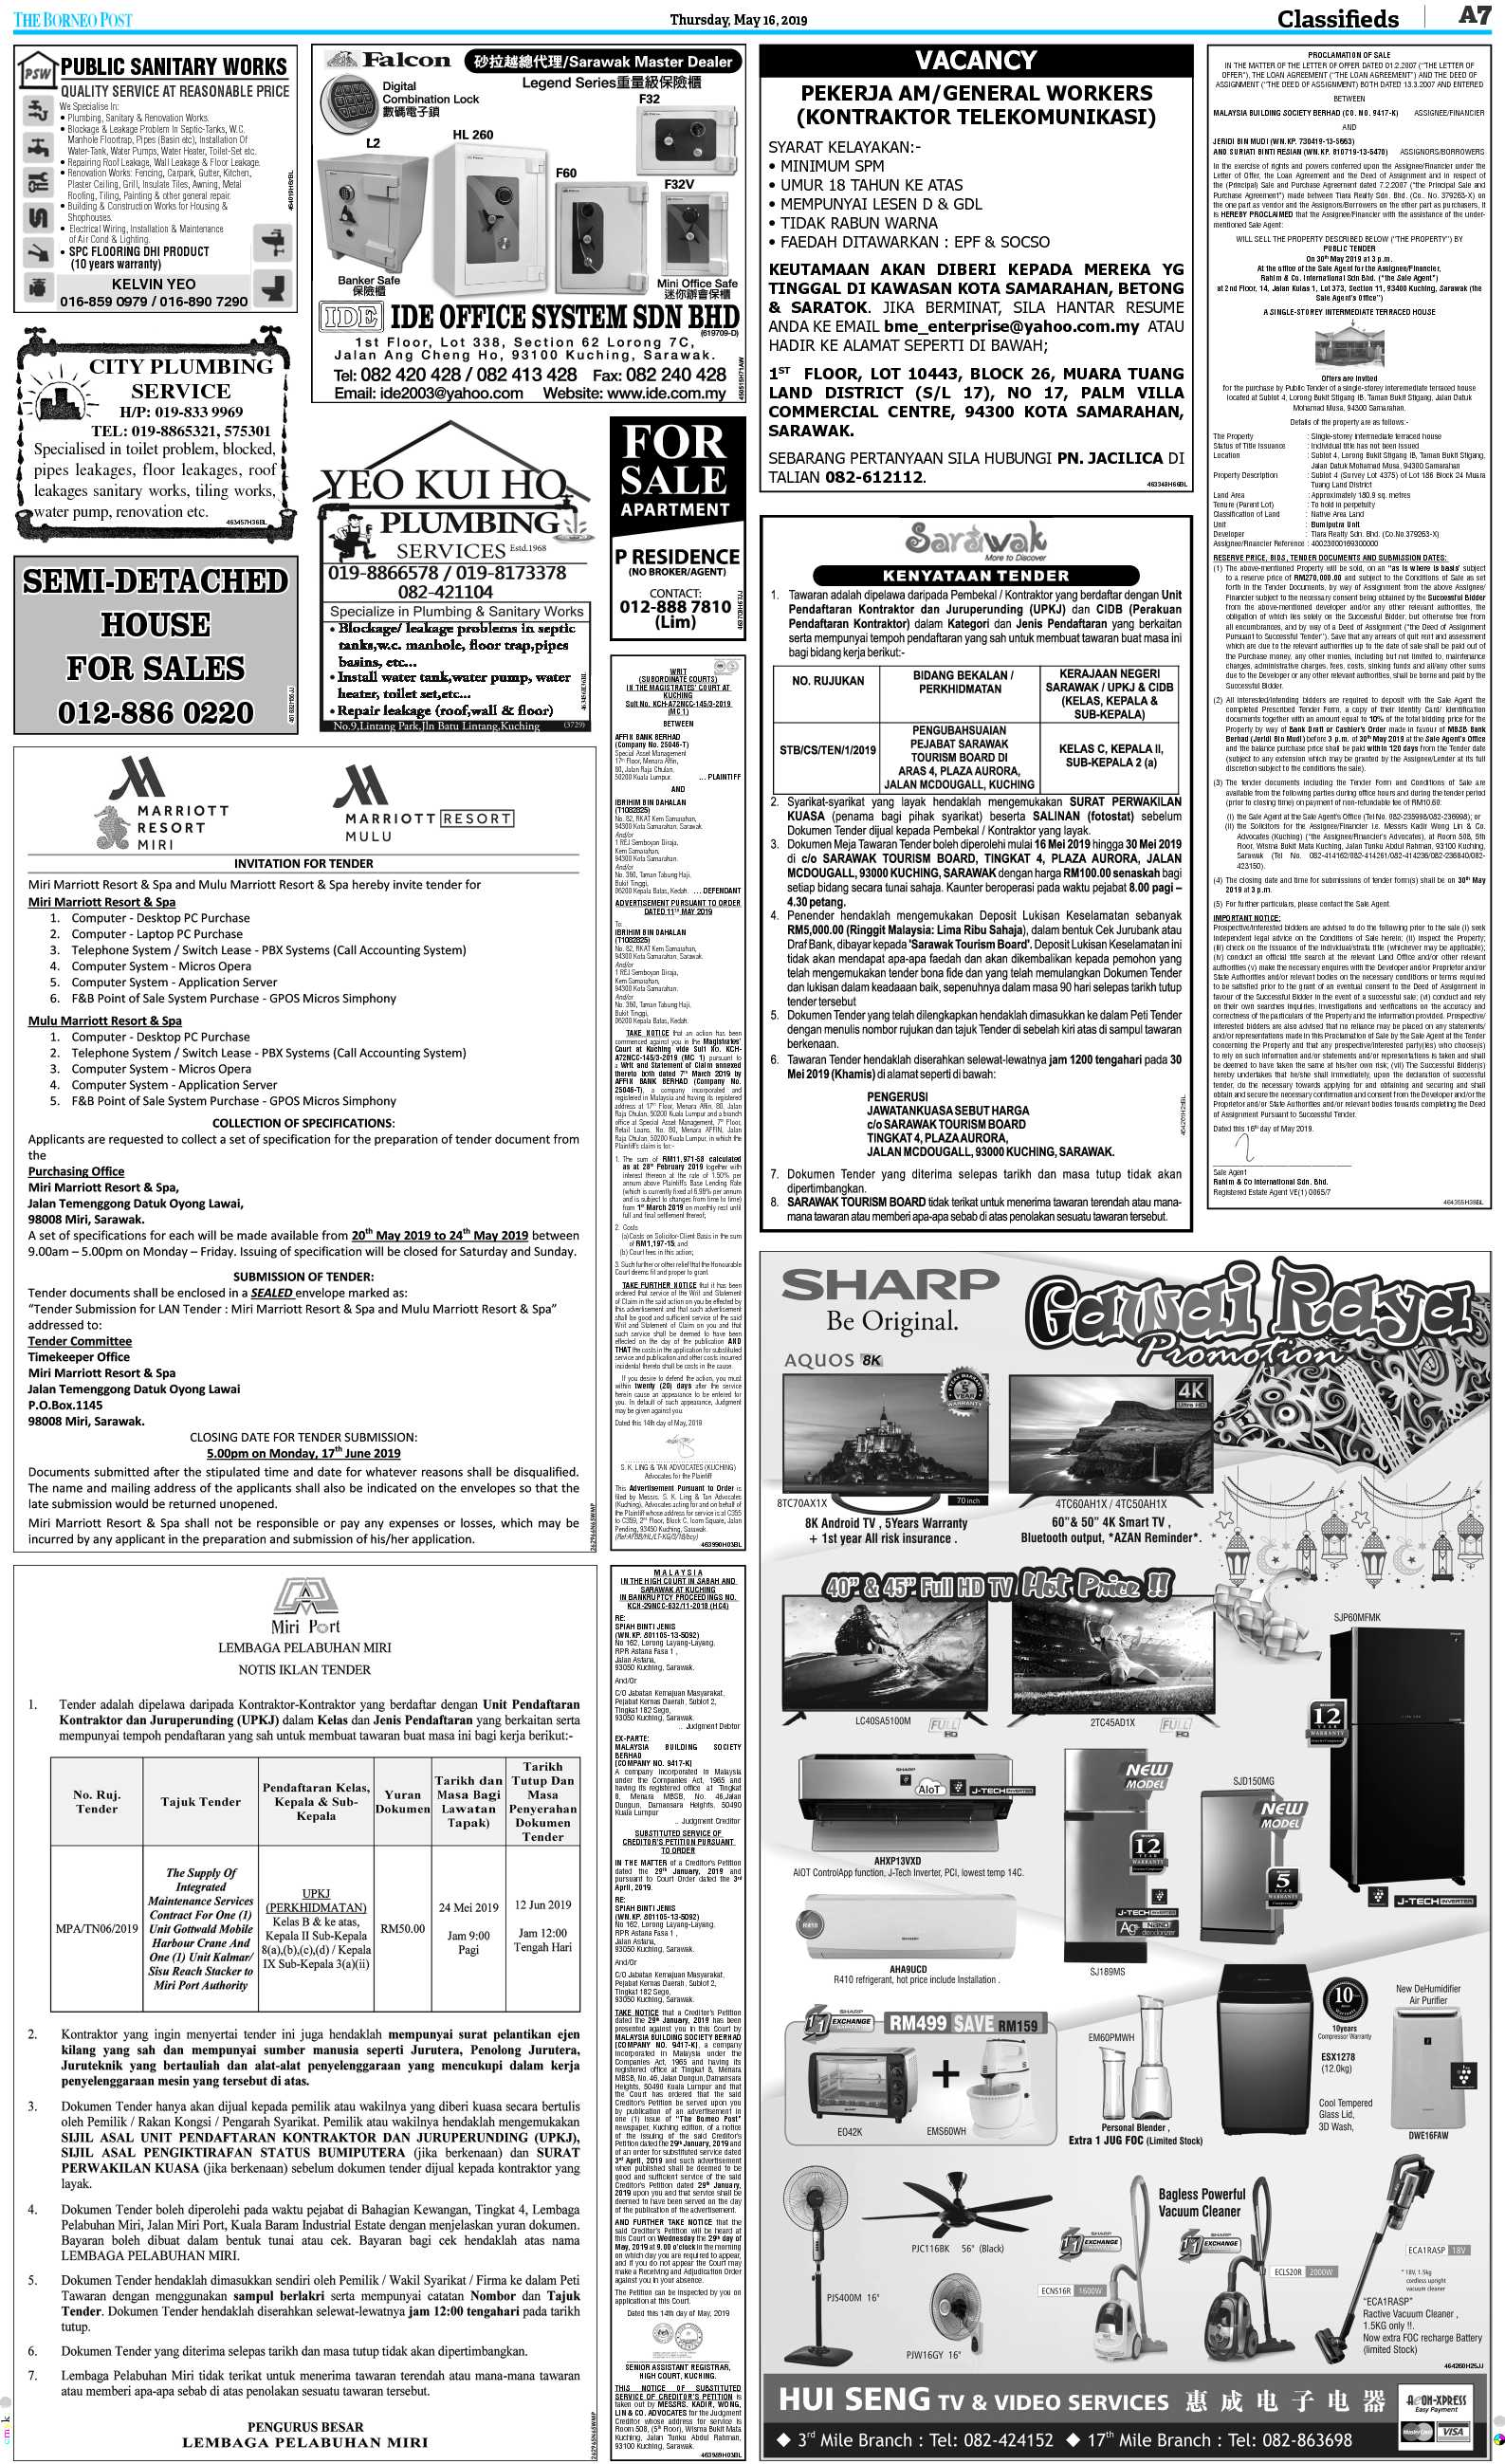 Thursday - May 16 | The Borneo Post Classifieds